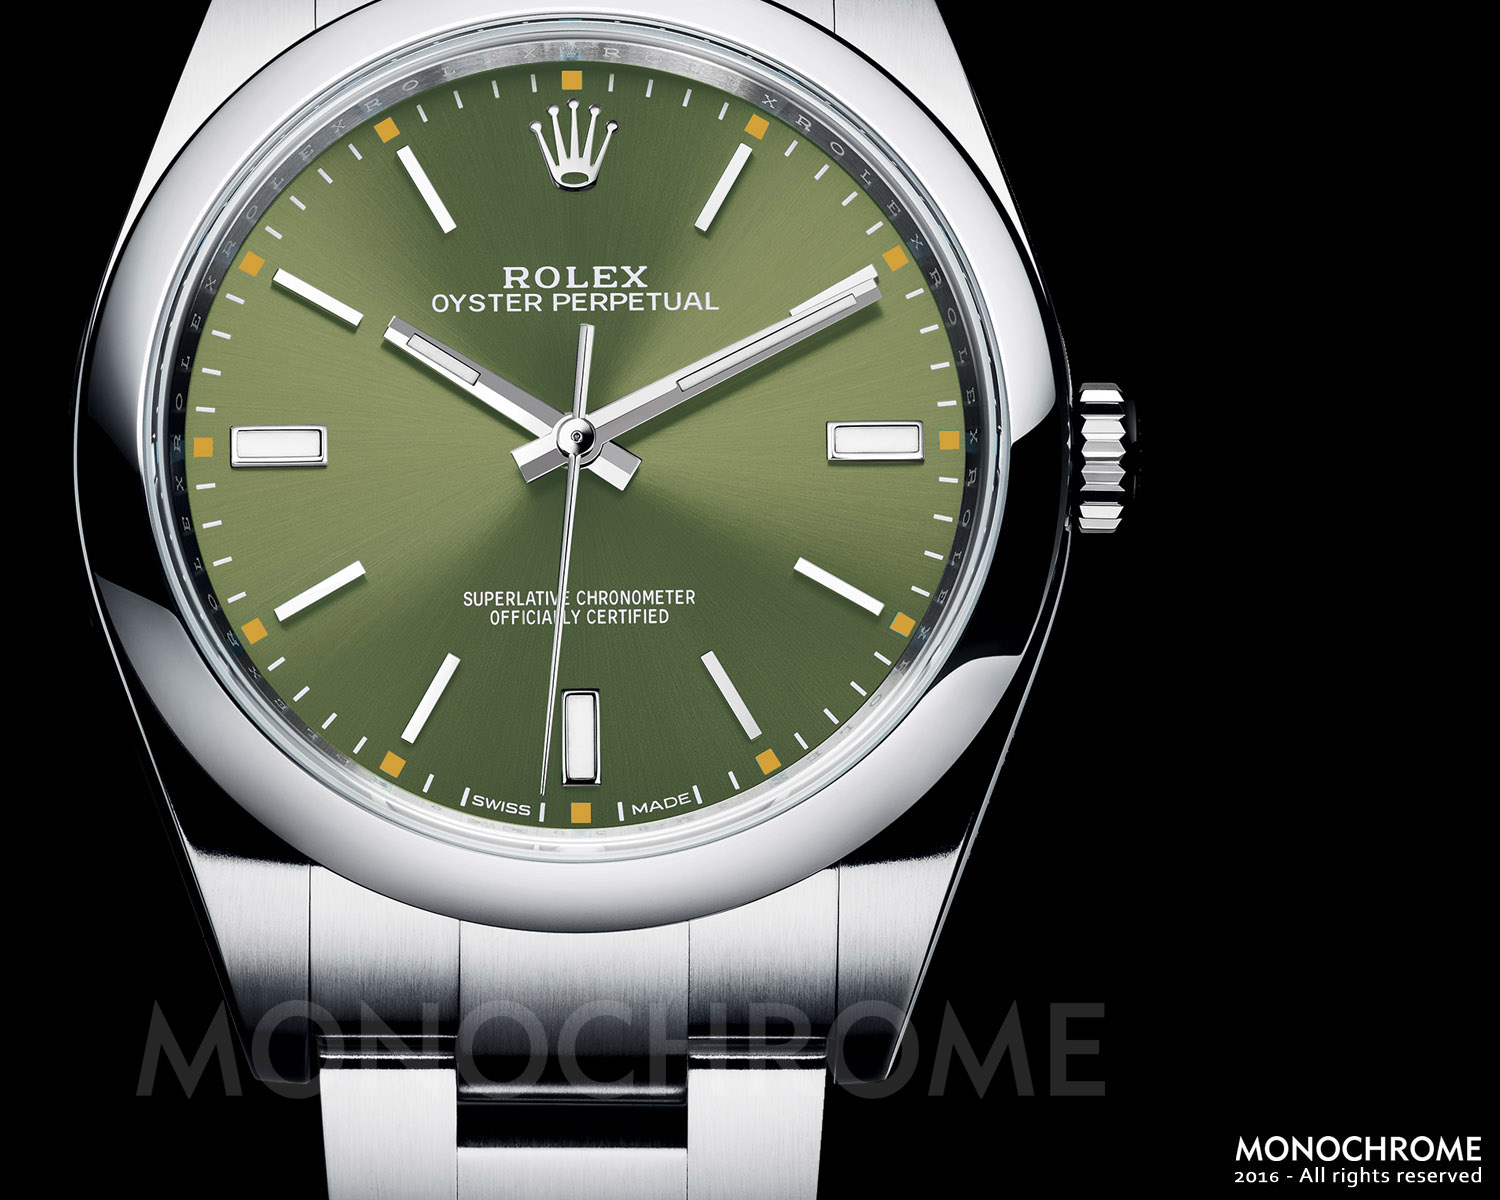 Rolex Oyster Perpetual 39 114300 olive green - Rolex Baselworld 2016 - Rolex Predictions 2016 - Monochrome